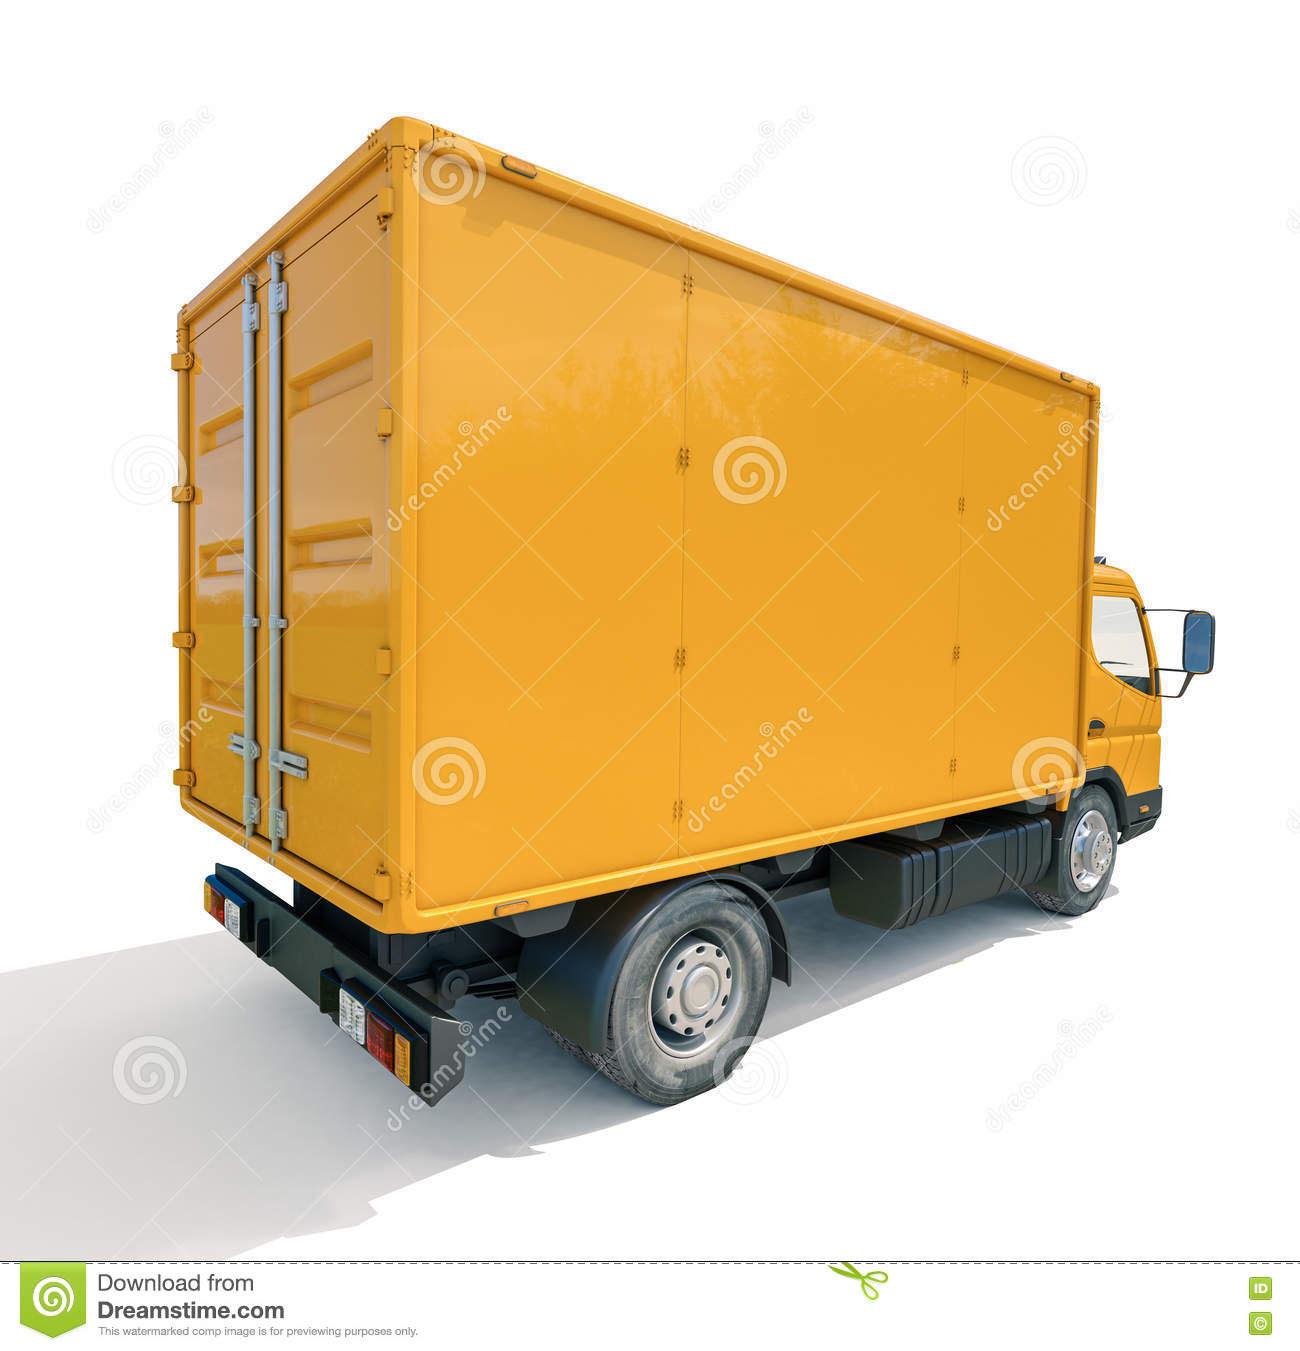 Delivery Truck Icon Royalty-Free Stock Photo | CartoonDealer.com #79146999  Delivery Truck ...